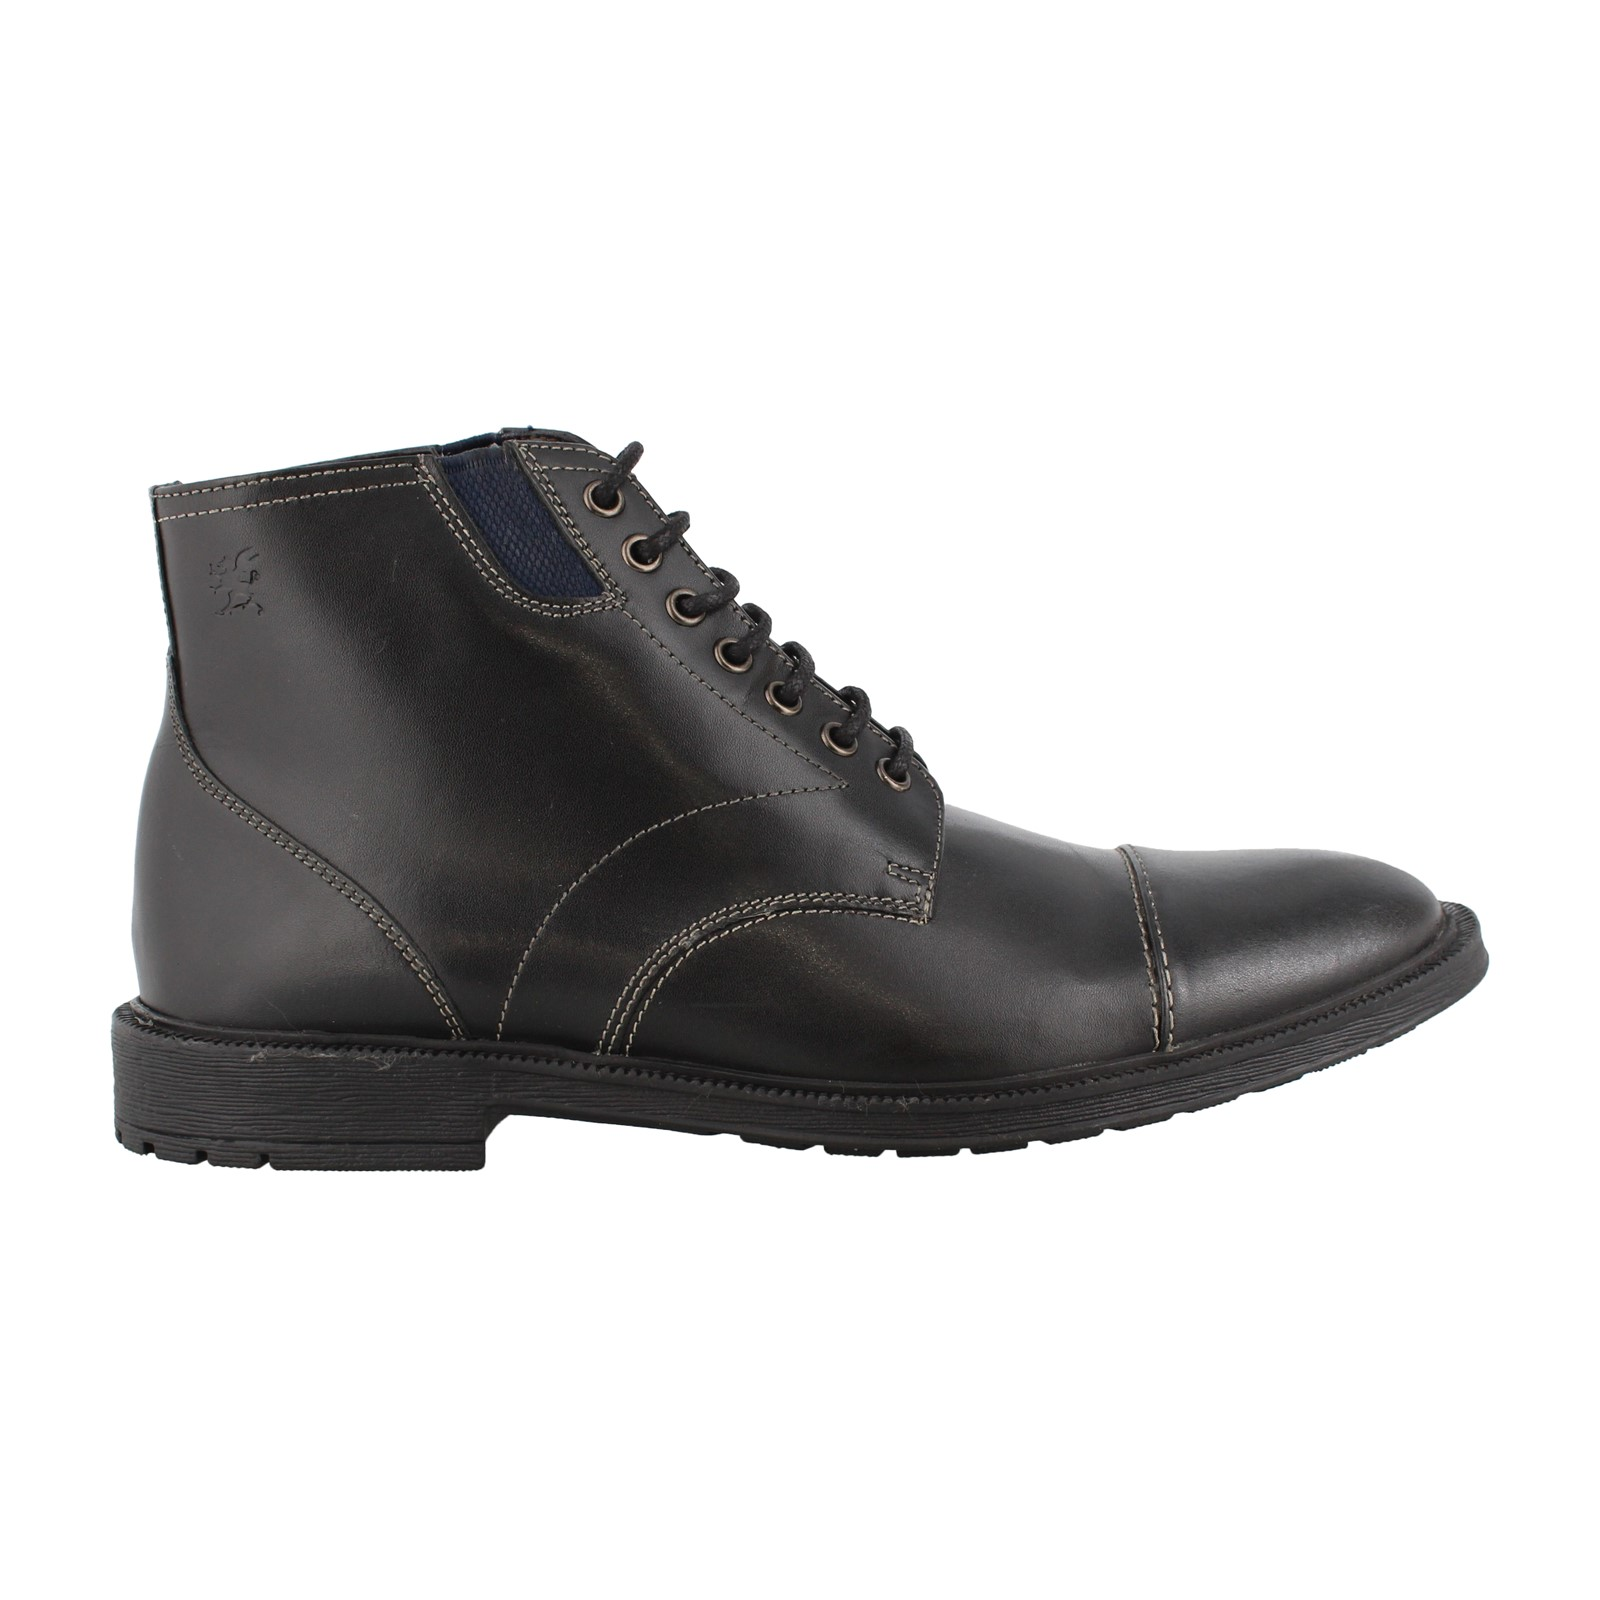 Men's Stacy Adams, Dowling Lace up Boots